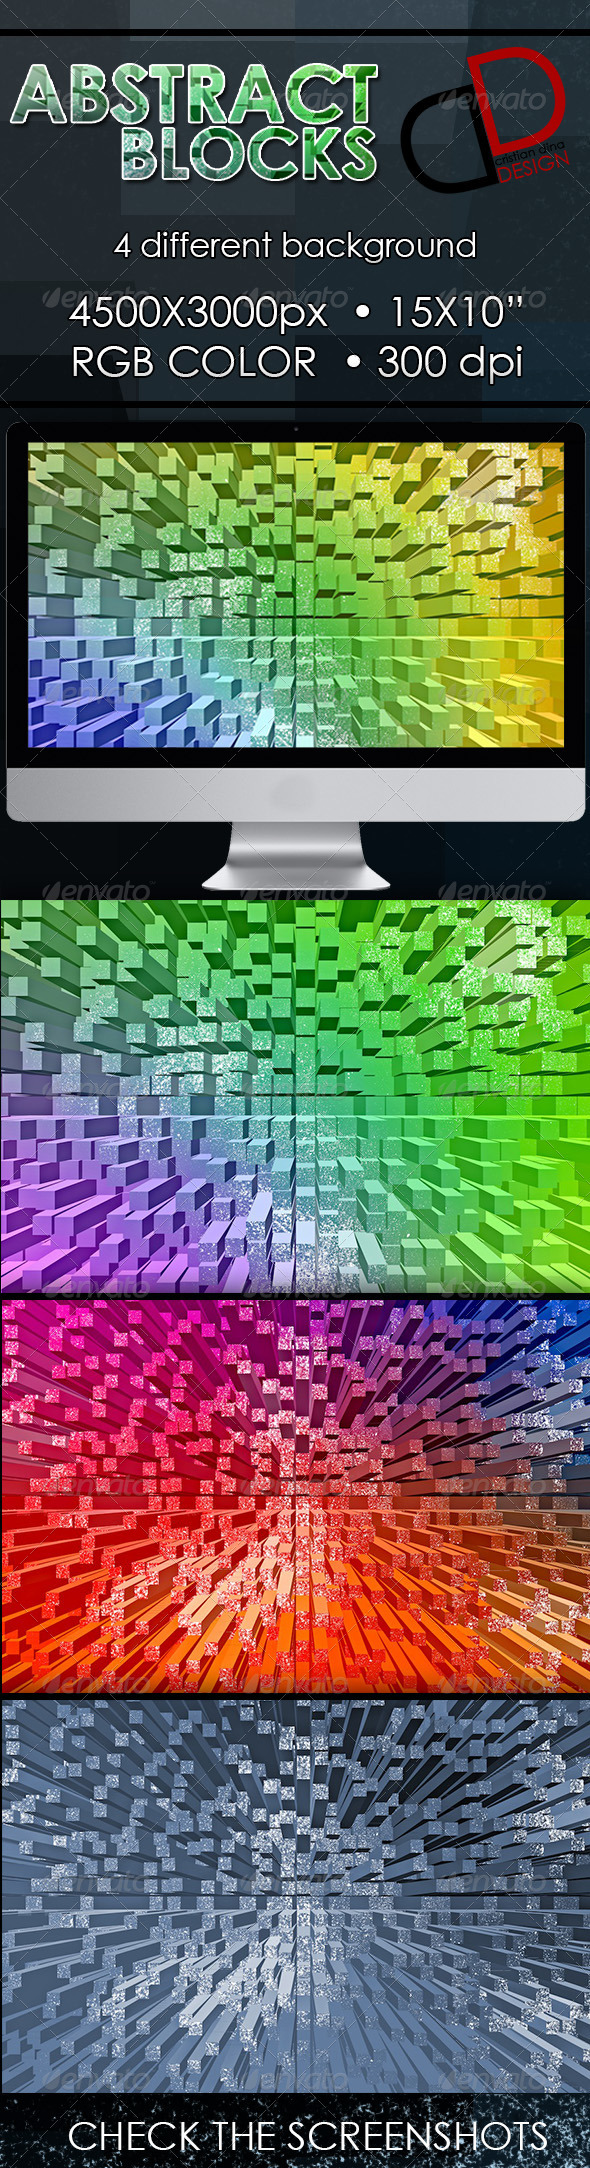 Abstract Blocks Backgrounds - Backgrounds Graphics